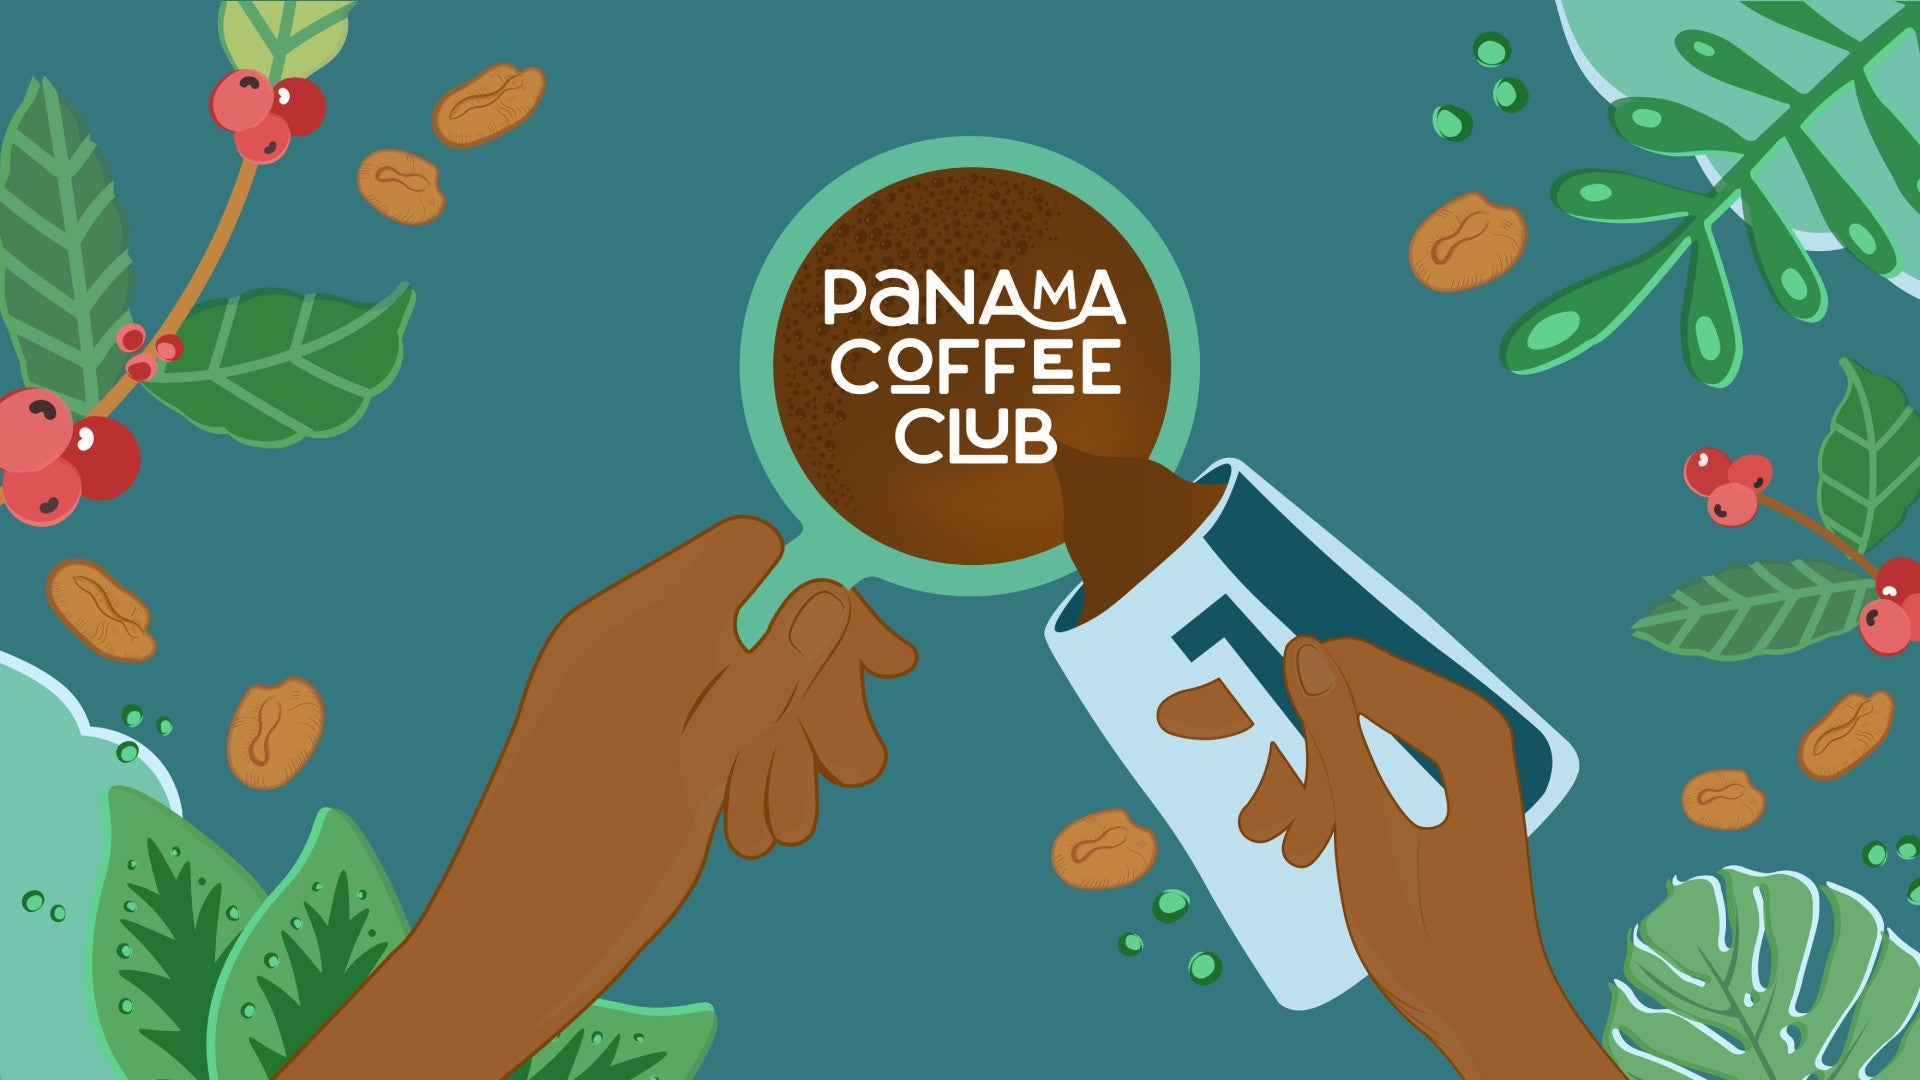 Panama Coffee Club